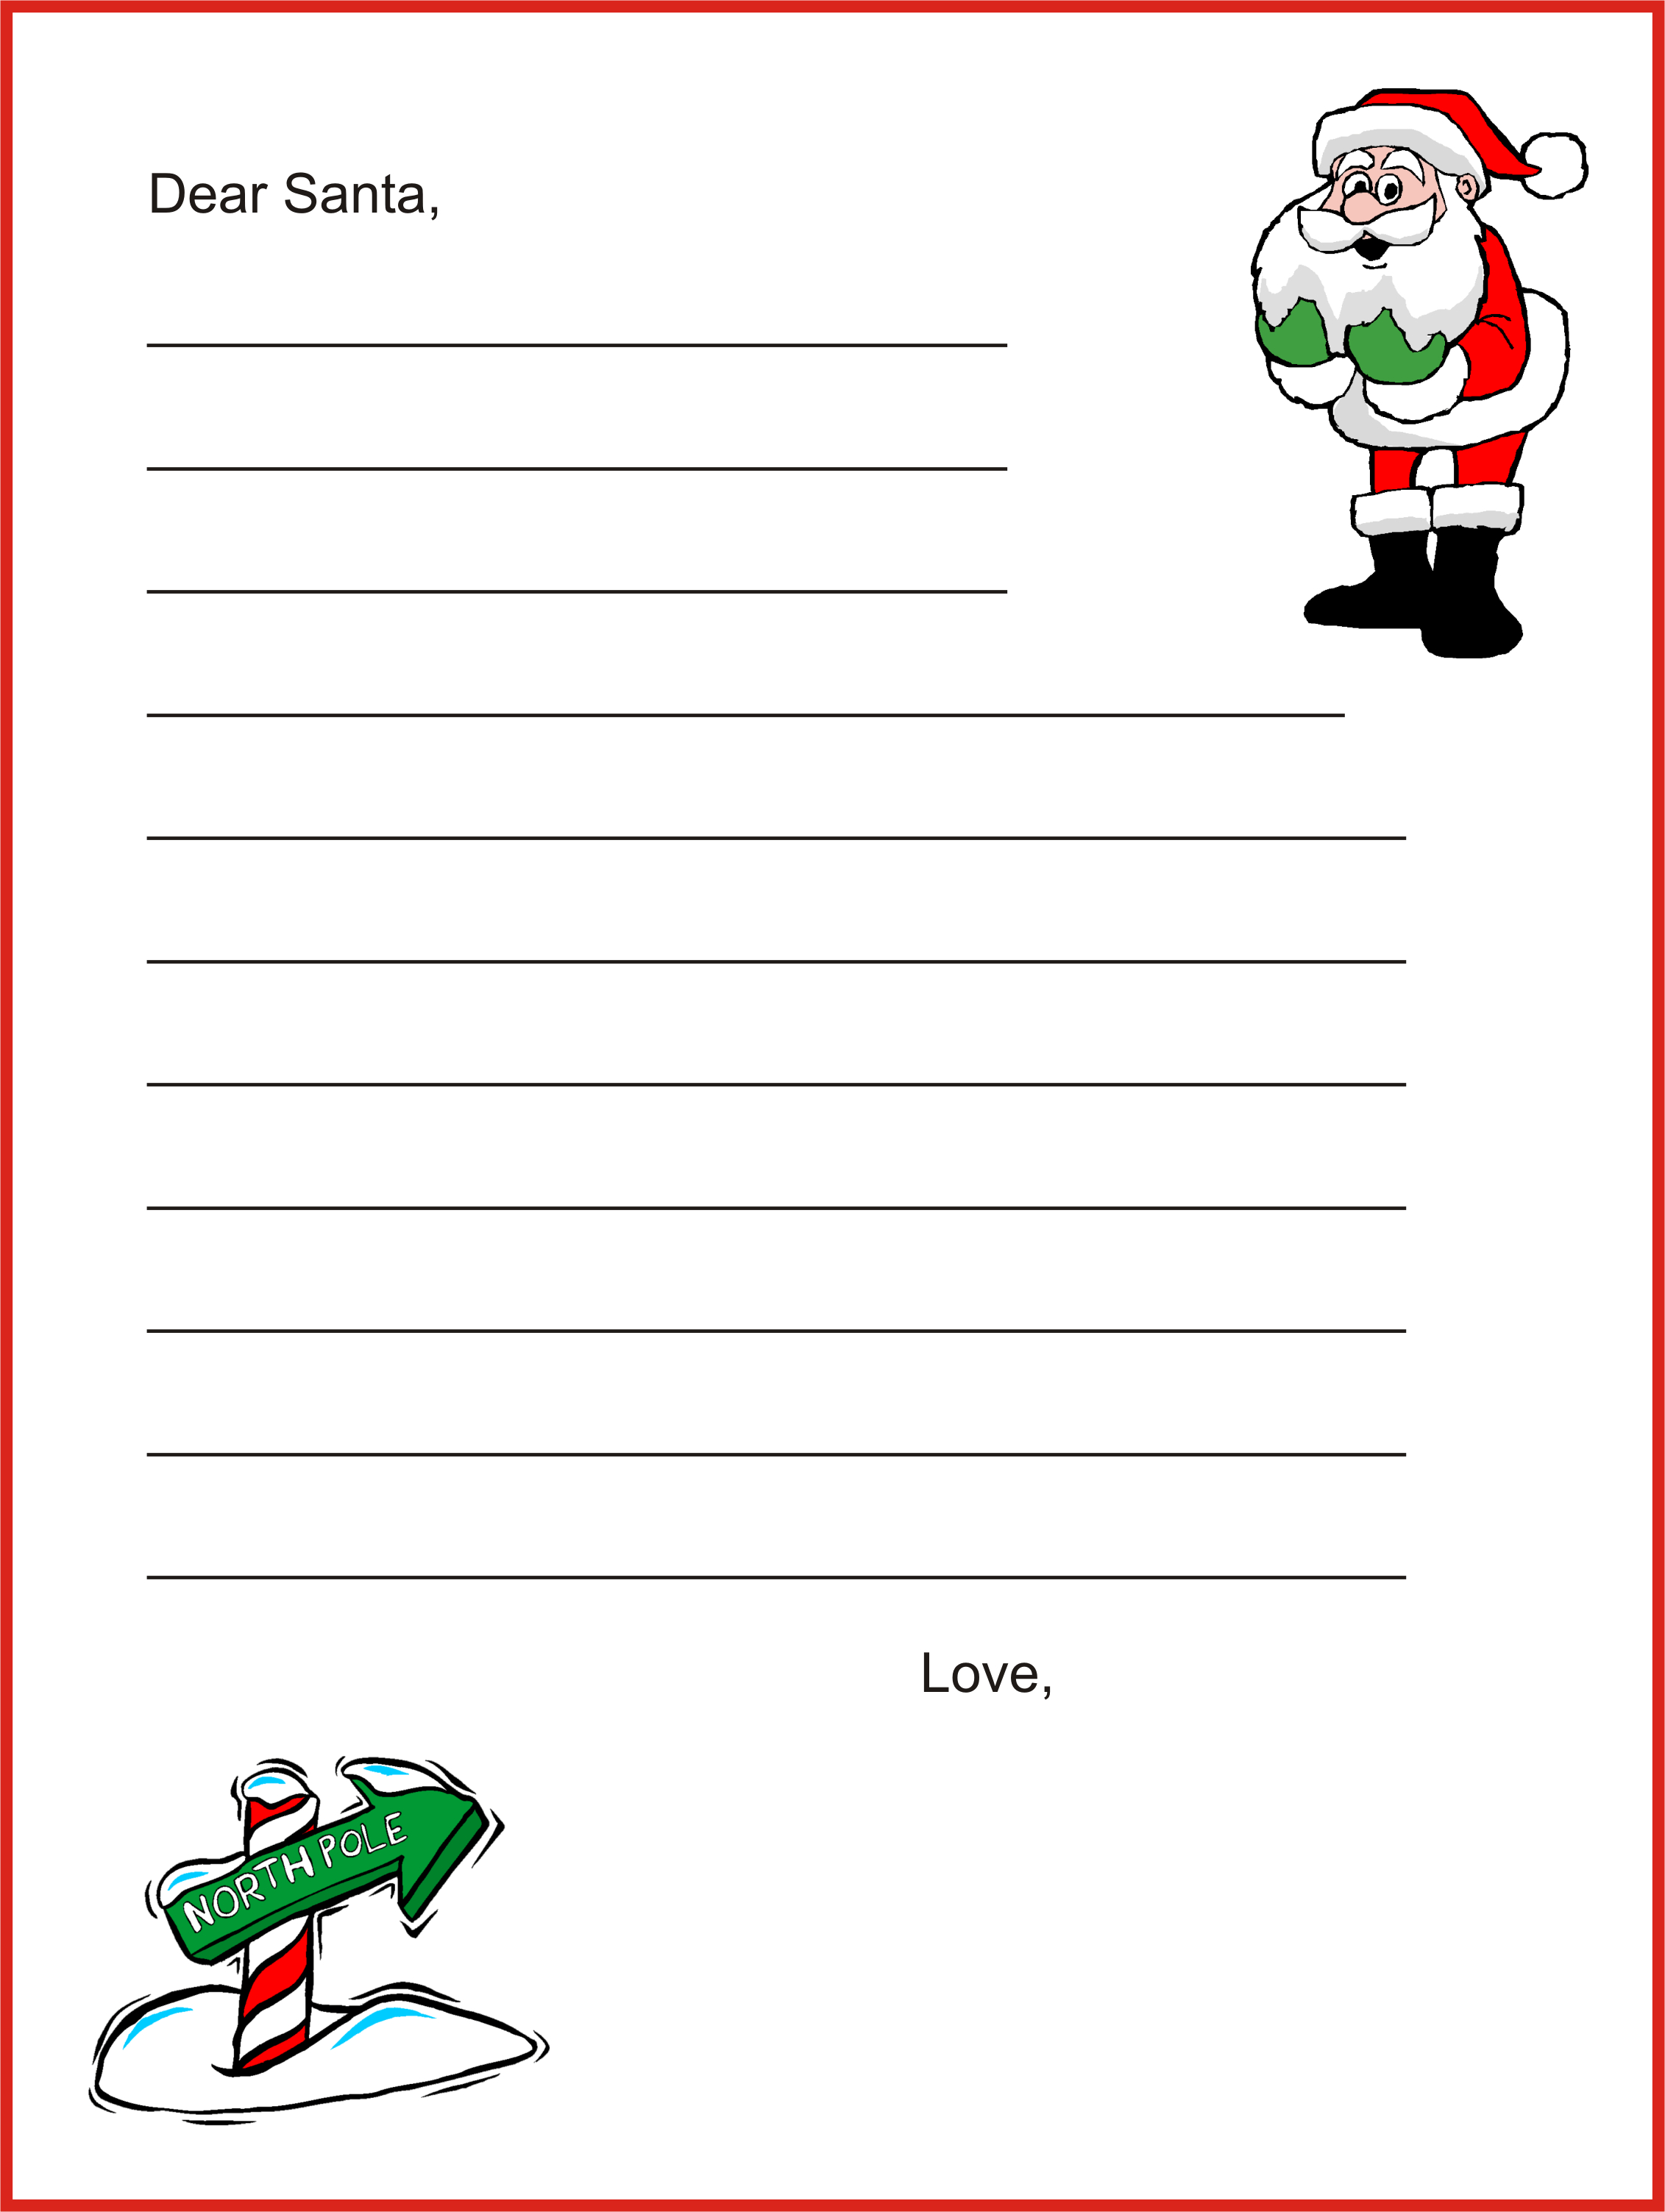 Dear santa letter template christmas letter tips free dear santa letter stationery spiritdancerdesigns Images